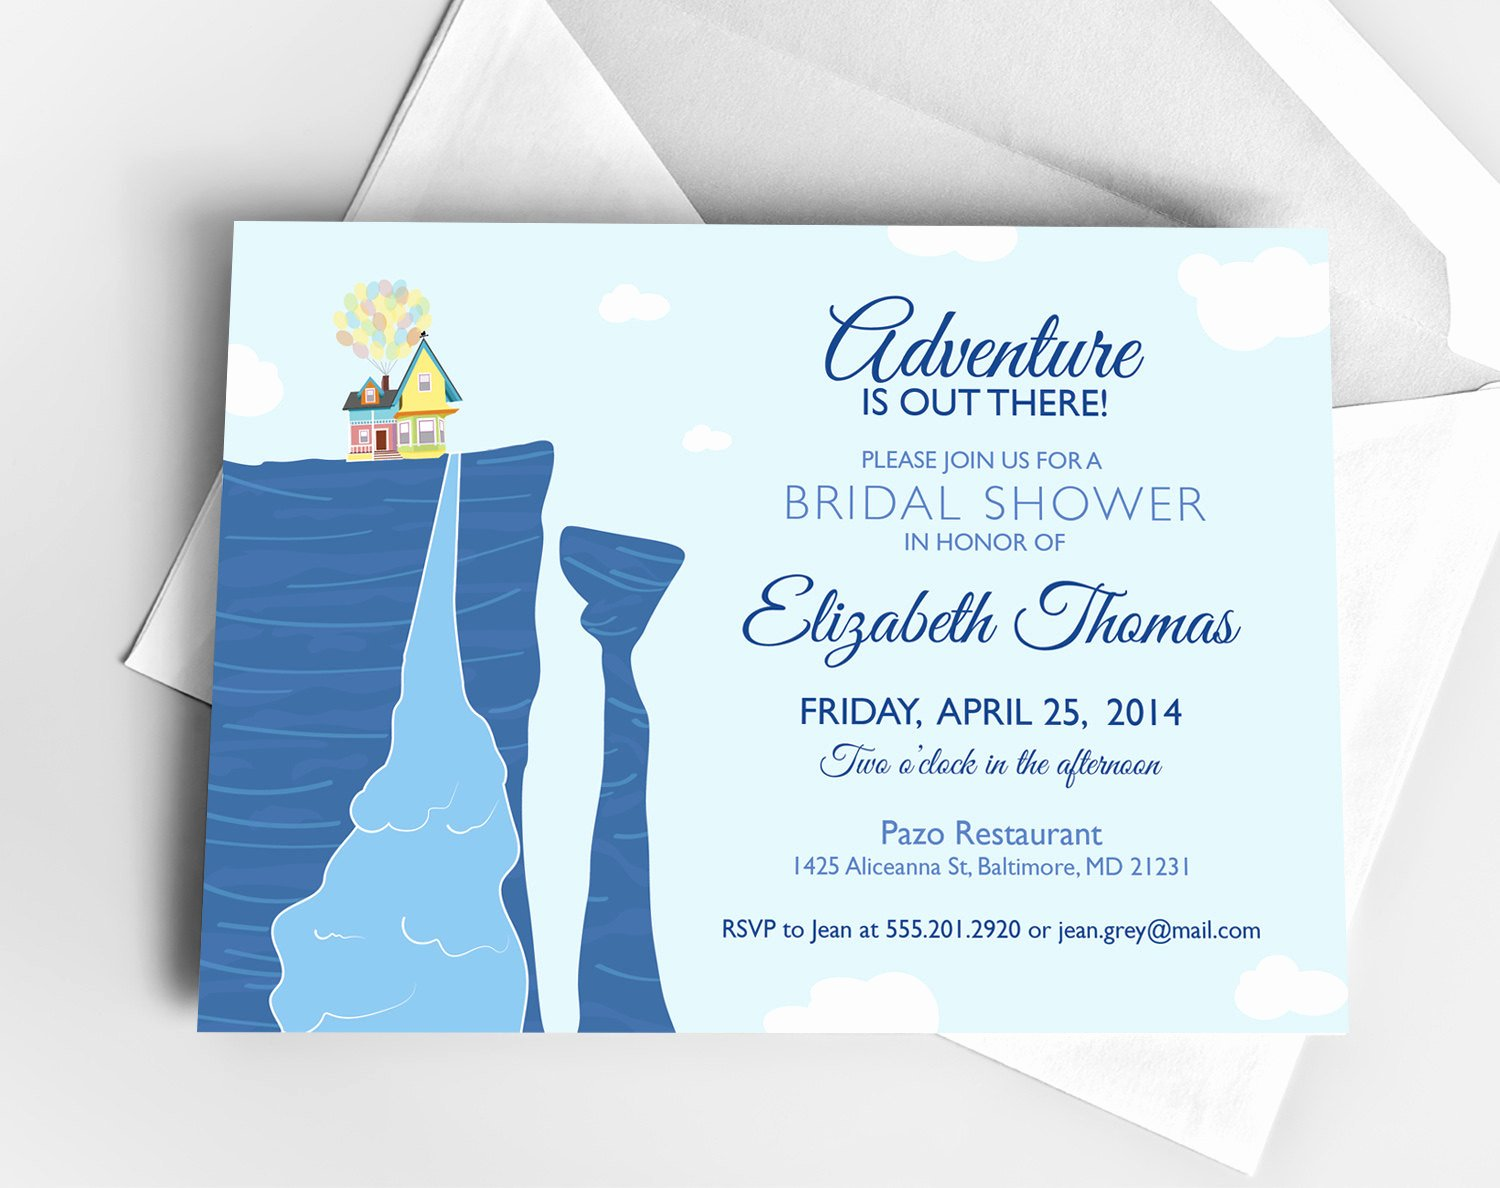 Disney Bridal Shower Invitations Luxury Disney Up Bridal Shower Invitation or Baby Shower by theinkedleaf